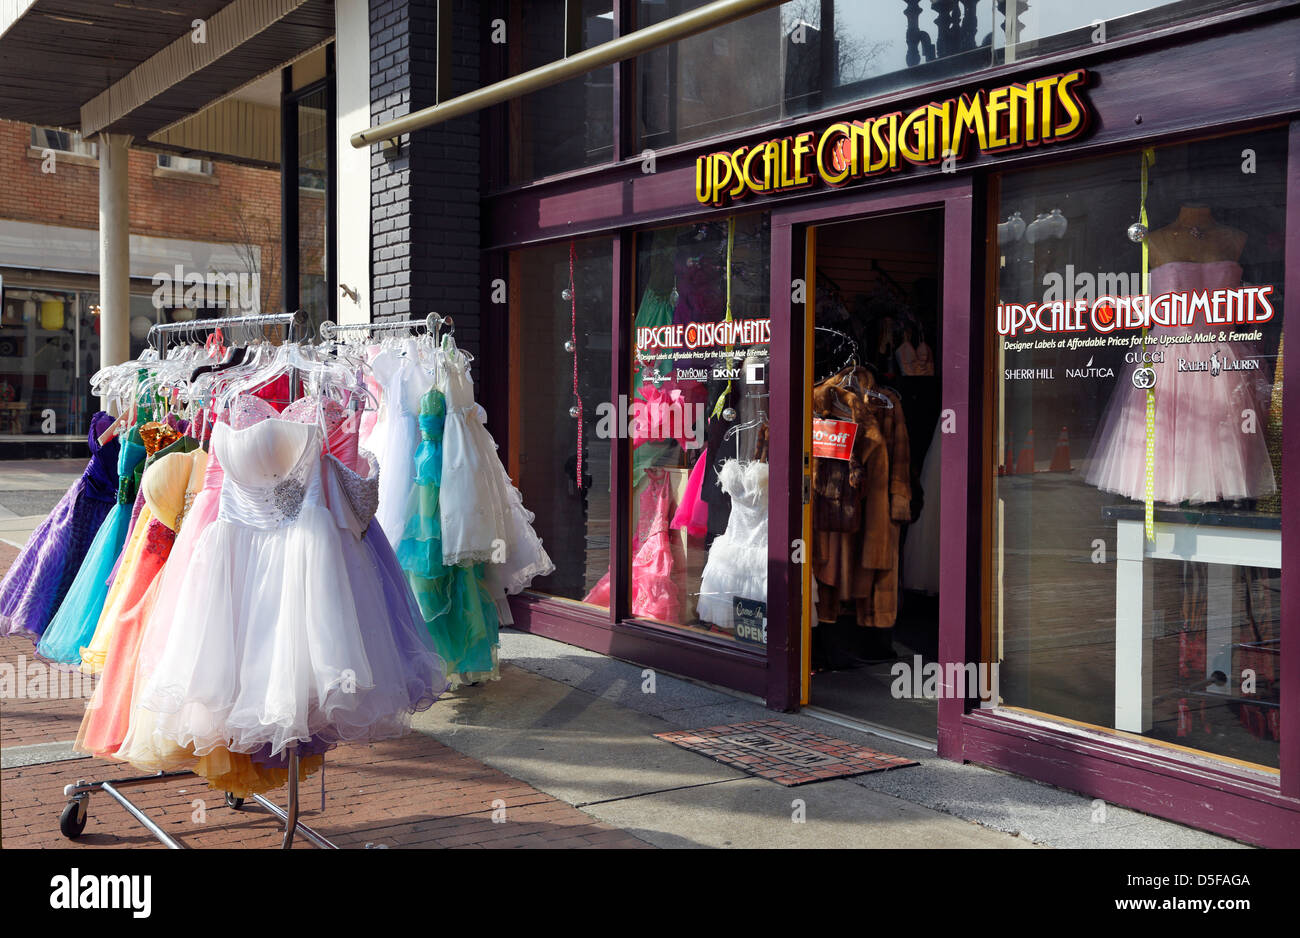 08d1cba9ee0 Consignment Store Stock Photos   Consignment Store Stock Images - Alamy